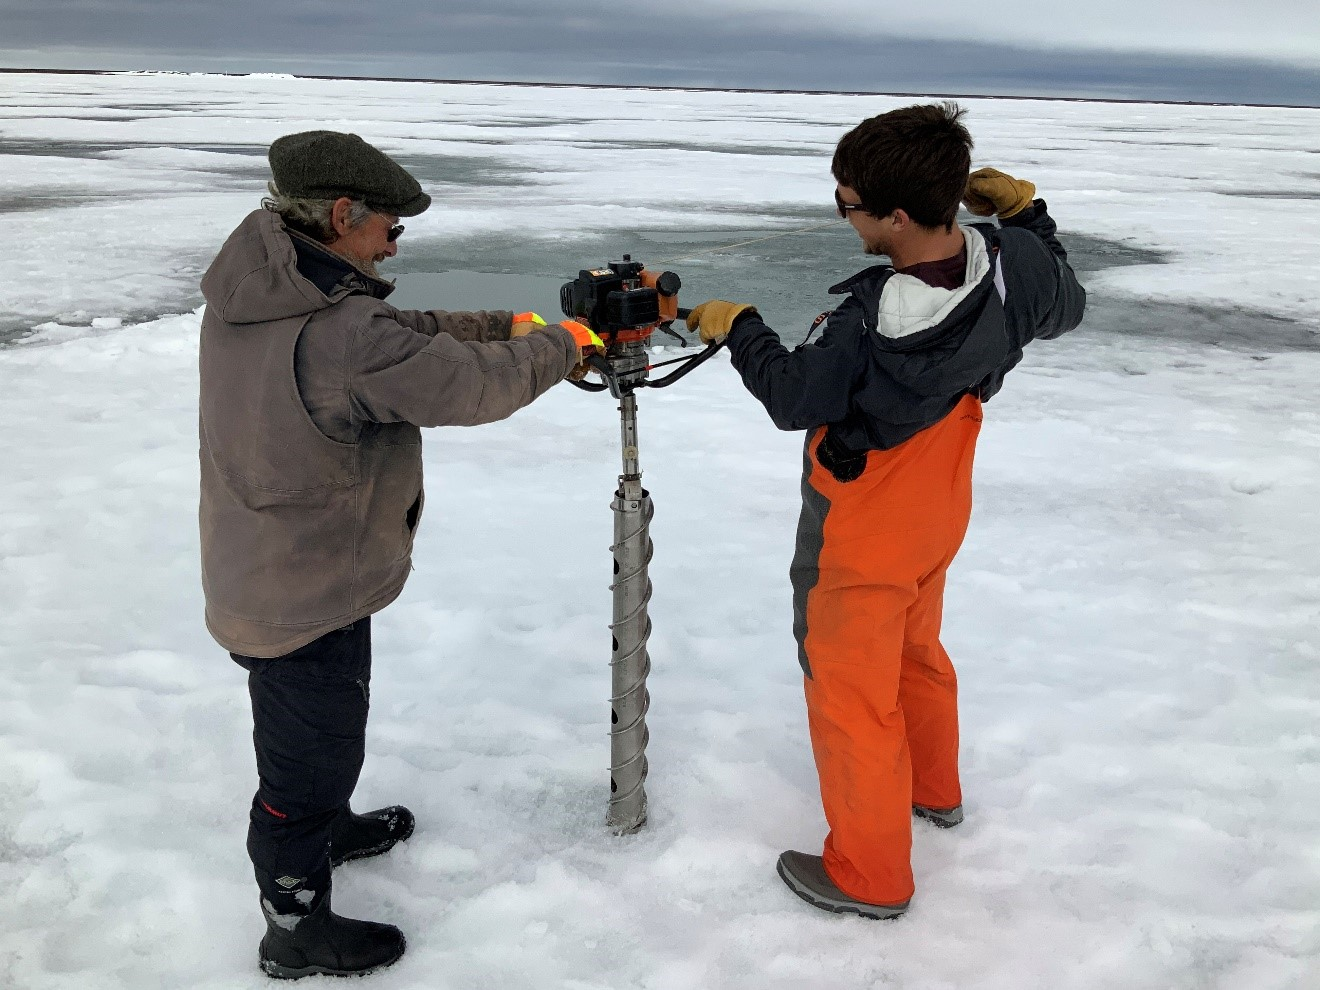 Out on the ice during SALVO fieldwork in the spring of 2019, Sturm (left) helps drill for an ice core. With him is University of Alaska Fairbanks technician Trevor Grams.